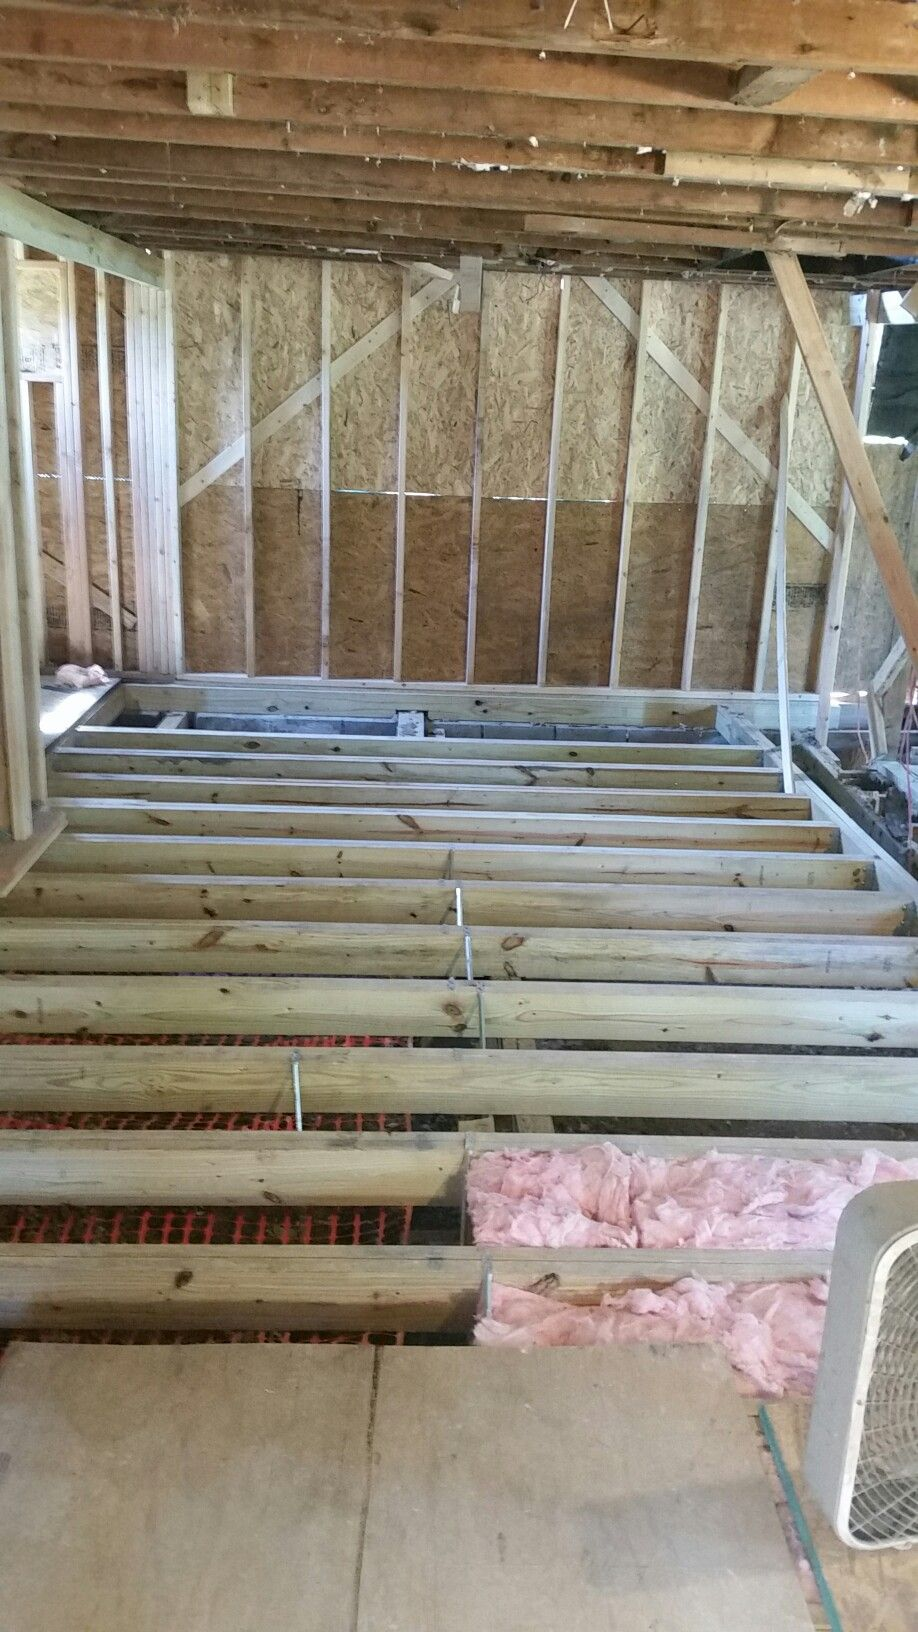 New Floor Joists And Walls In Back Part Of House Ready To Remove